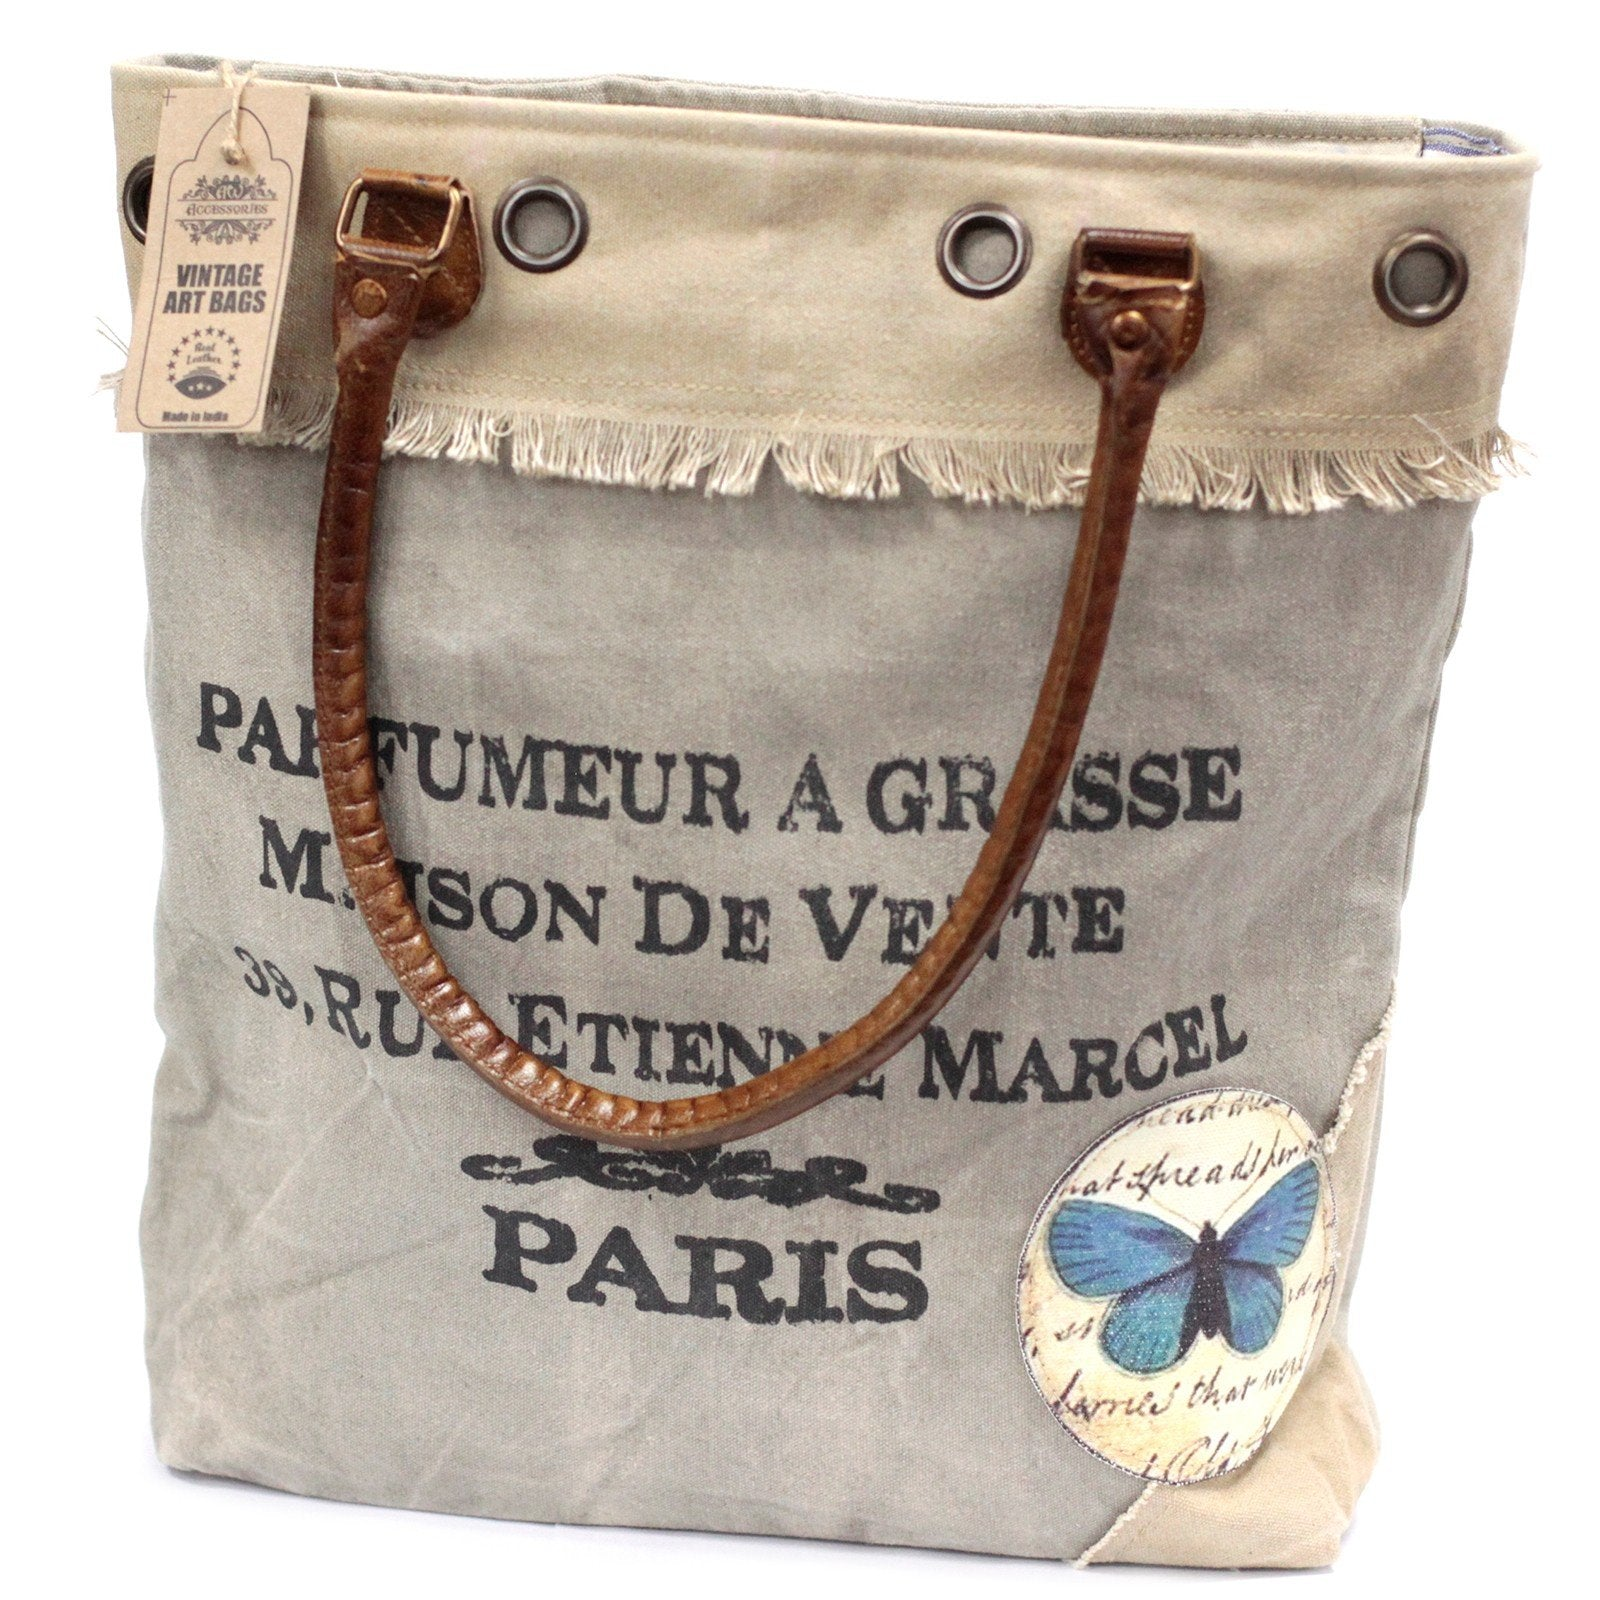 Vintage Bag - Parfumeur a Grasse - Gift2U.co.uk - Unique gifts online to You